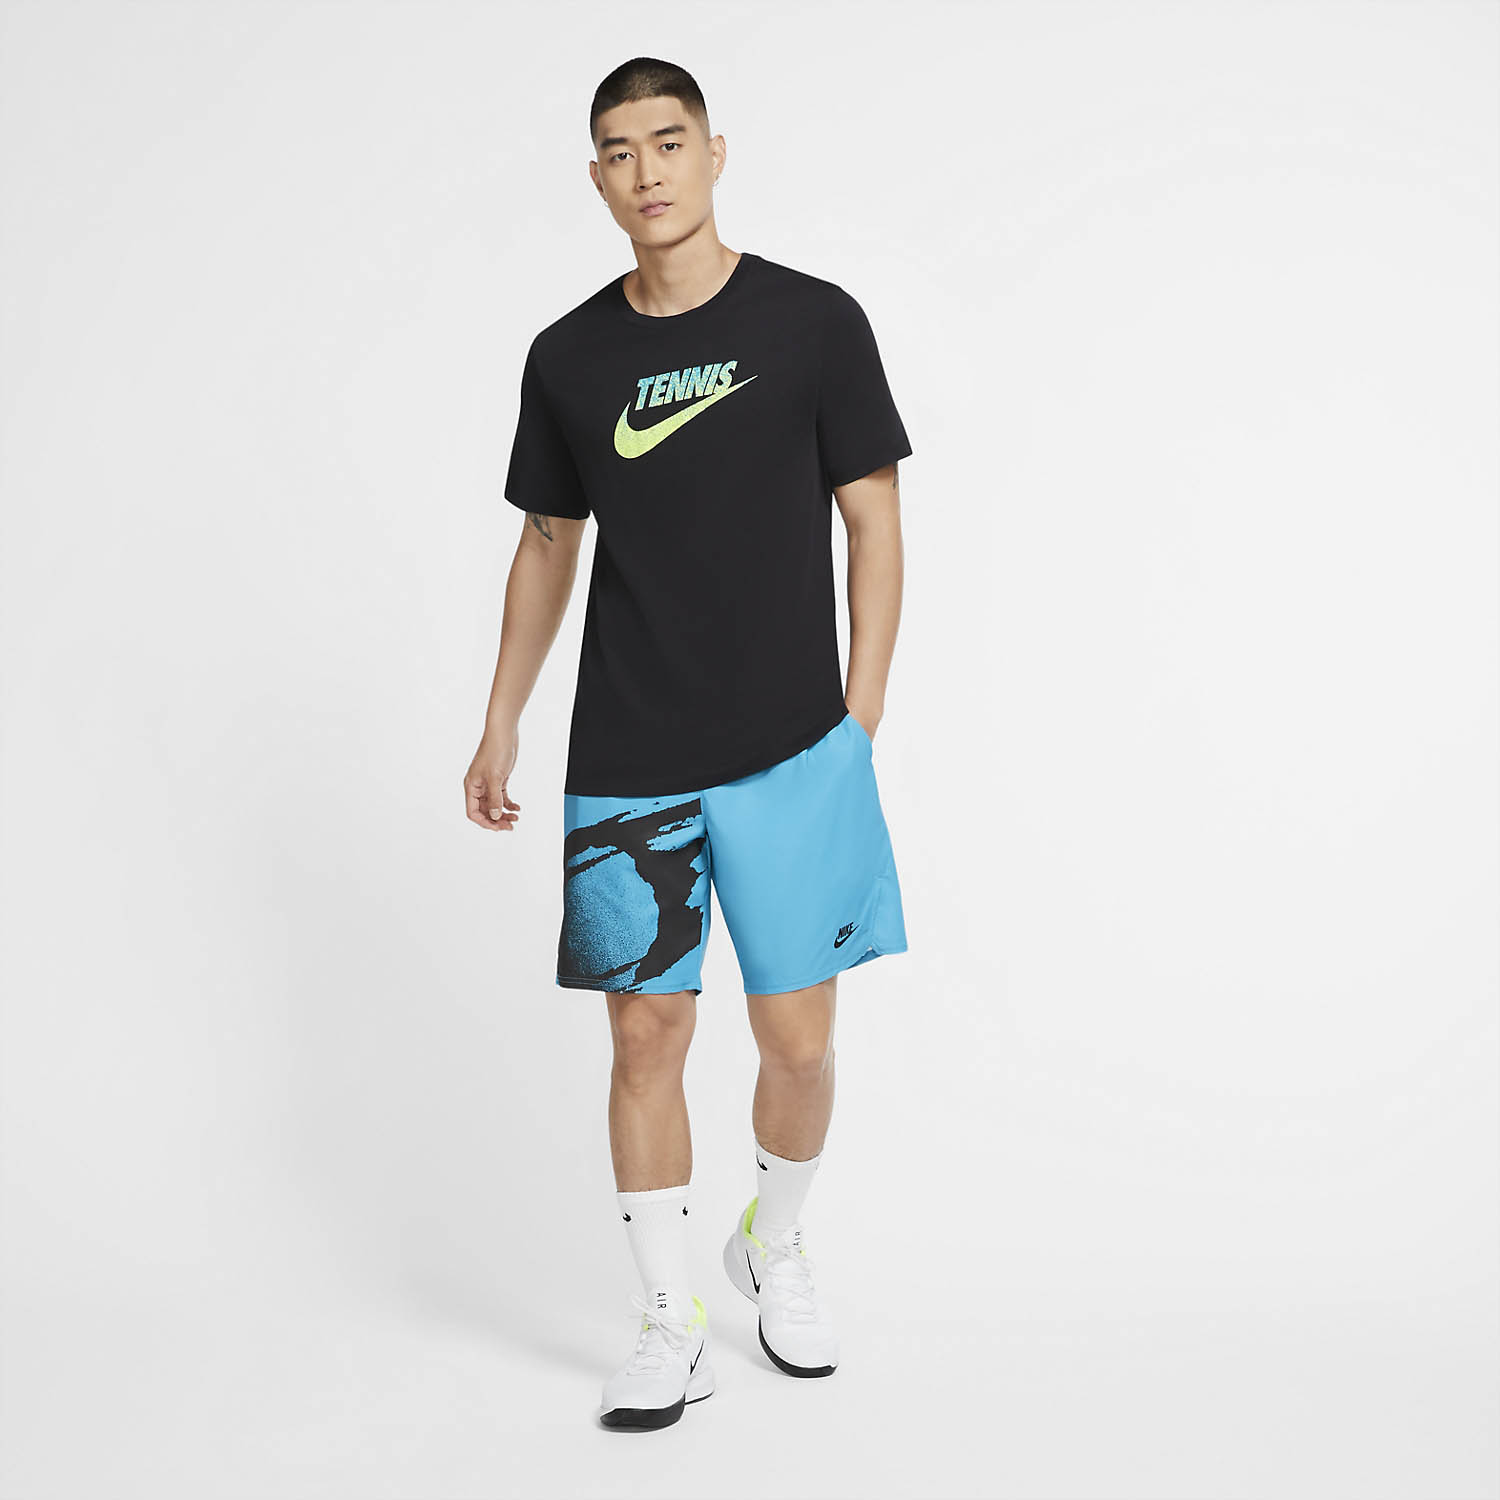 Nike Court Graphic T-Shirt - Black/Volt/Neo Turquoise